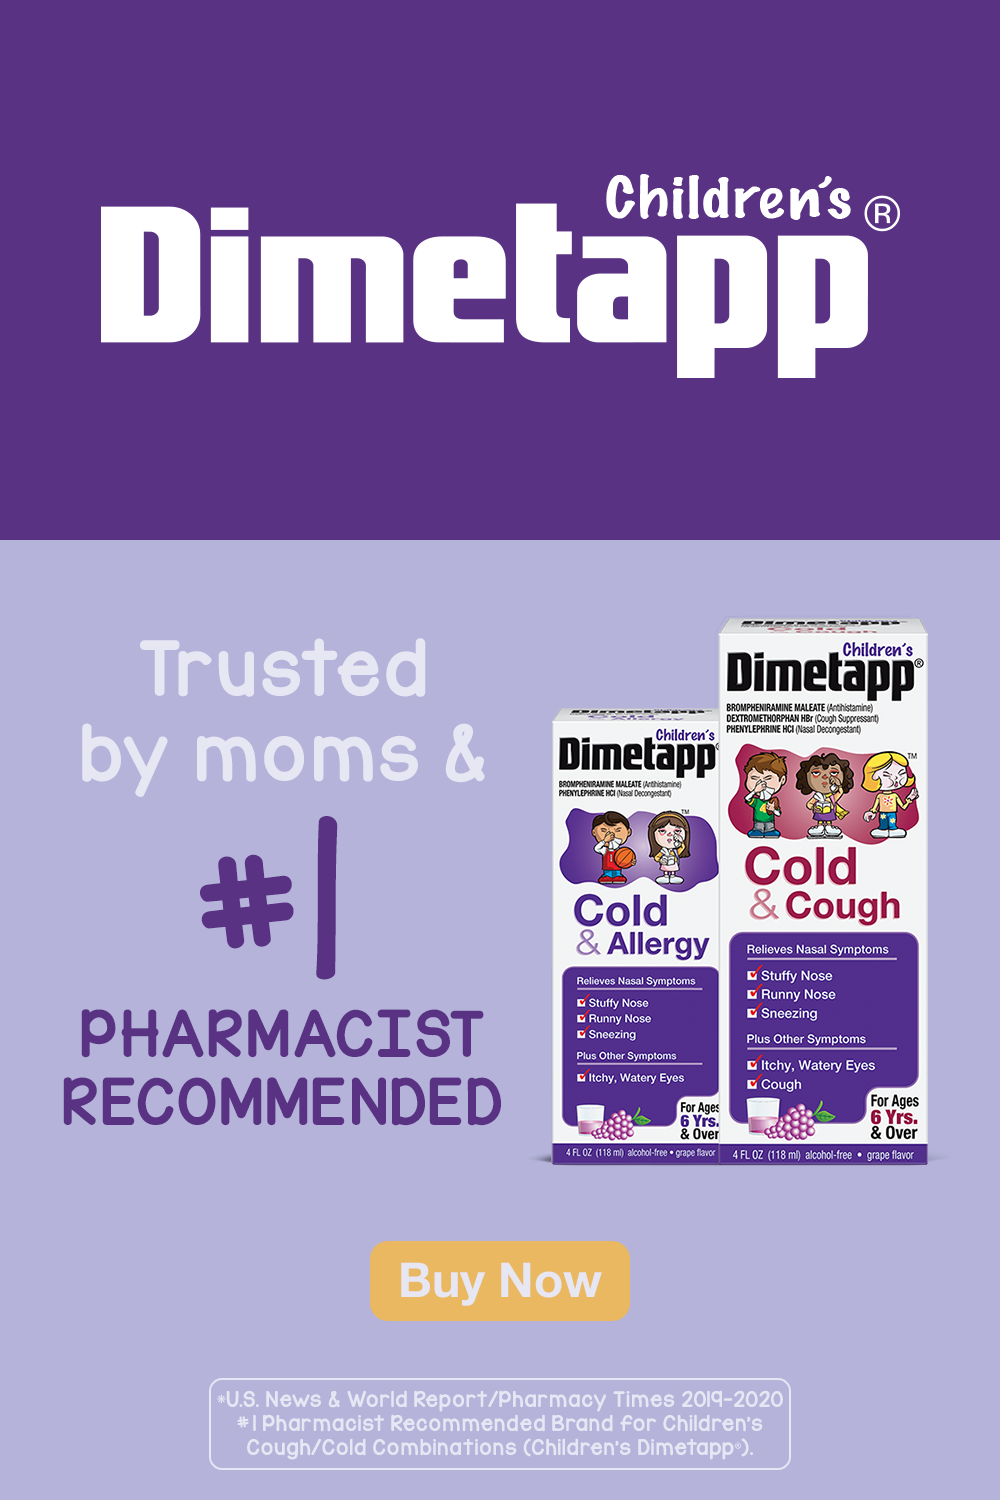 Need more convincing? Not only is Children's Dimetapp® the